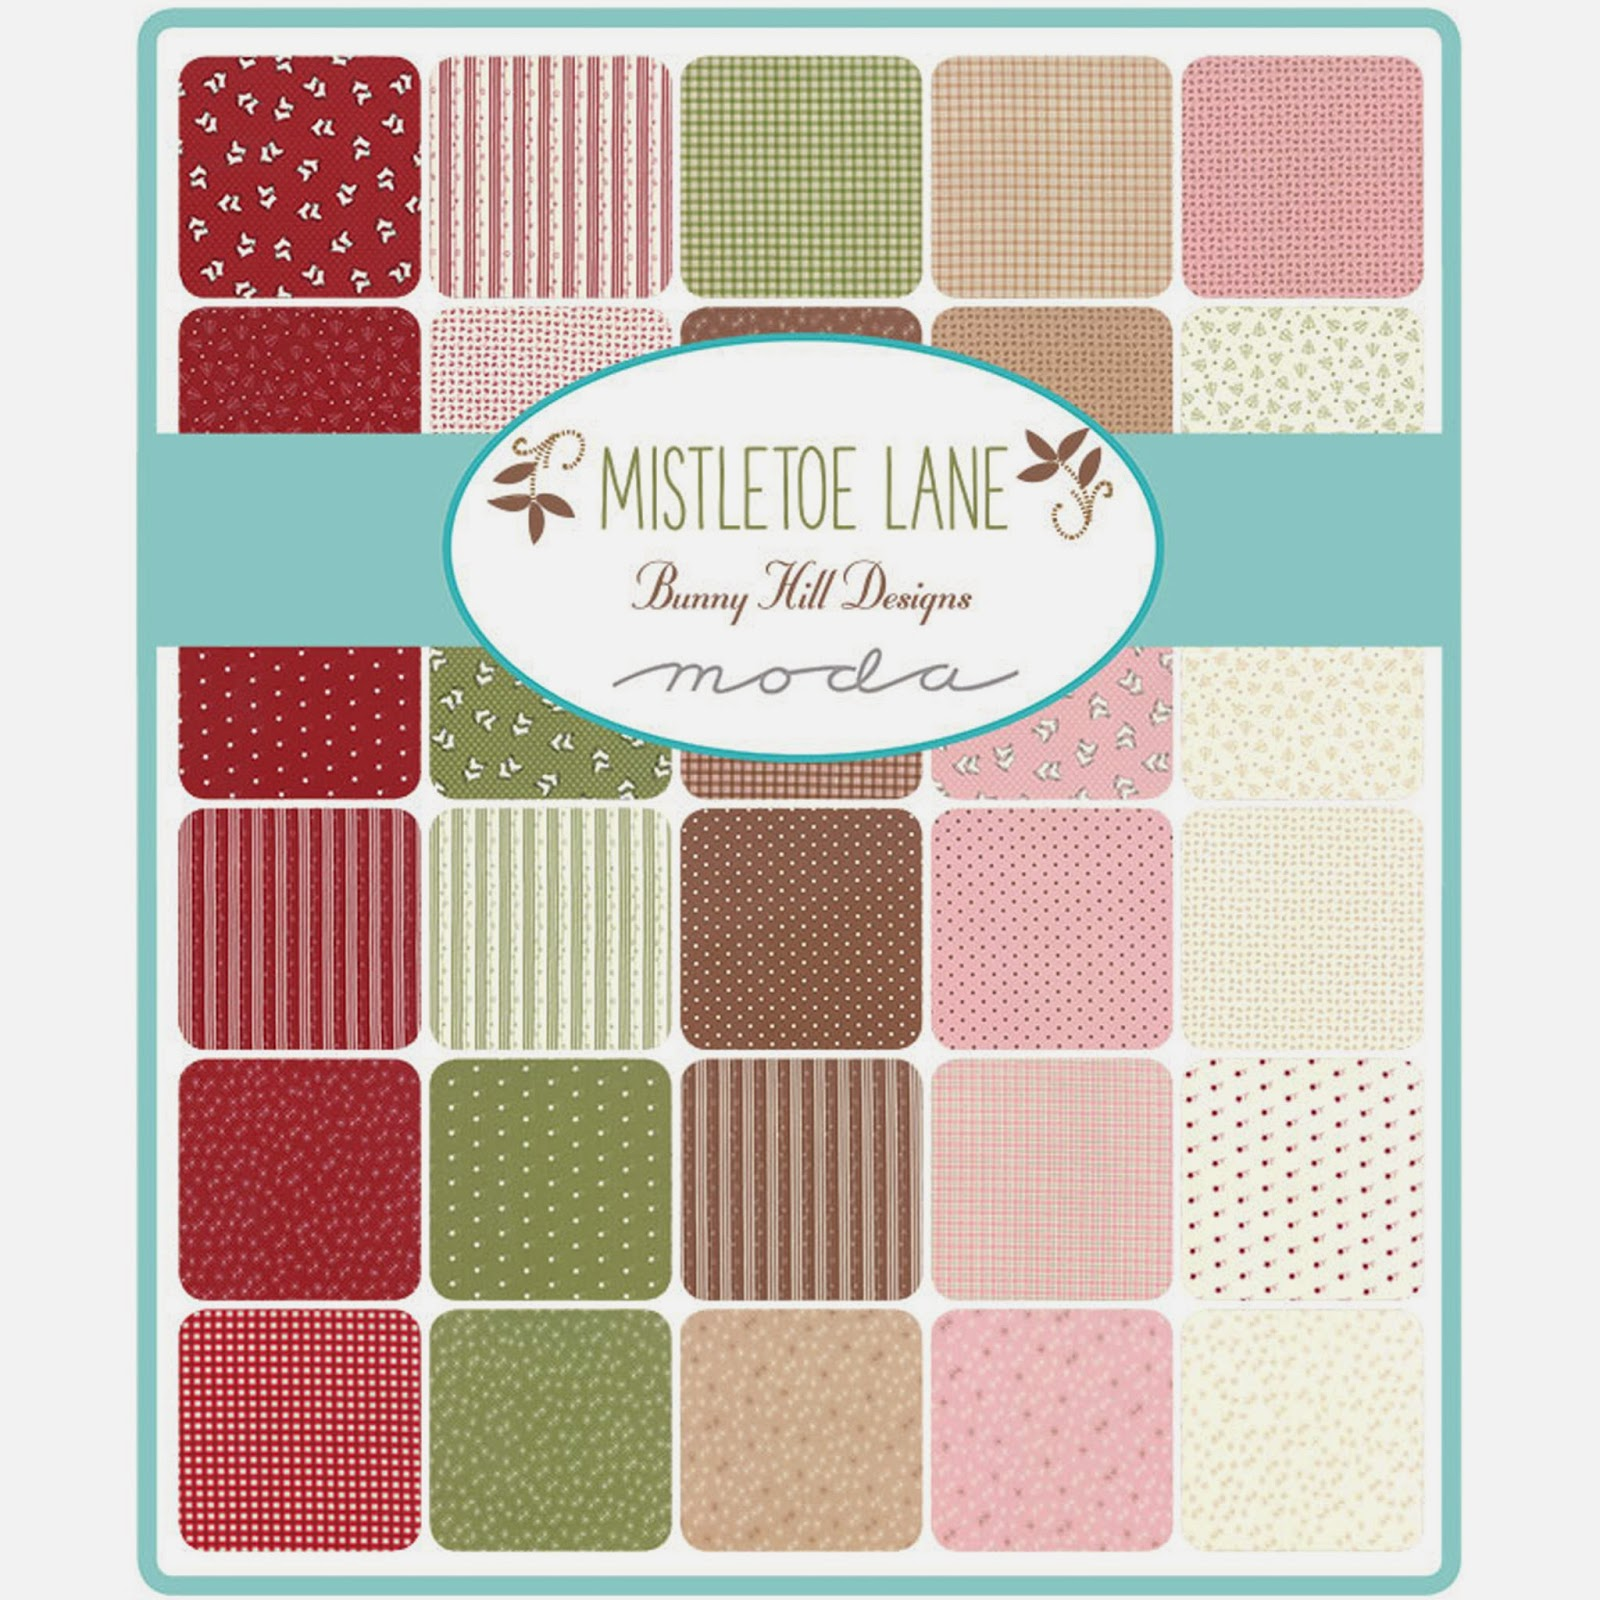 Moda MISTLETOE LANE Fabric by Bunny Hill Designs for Moda Fabrics